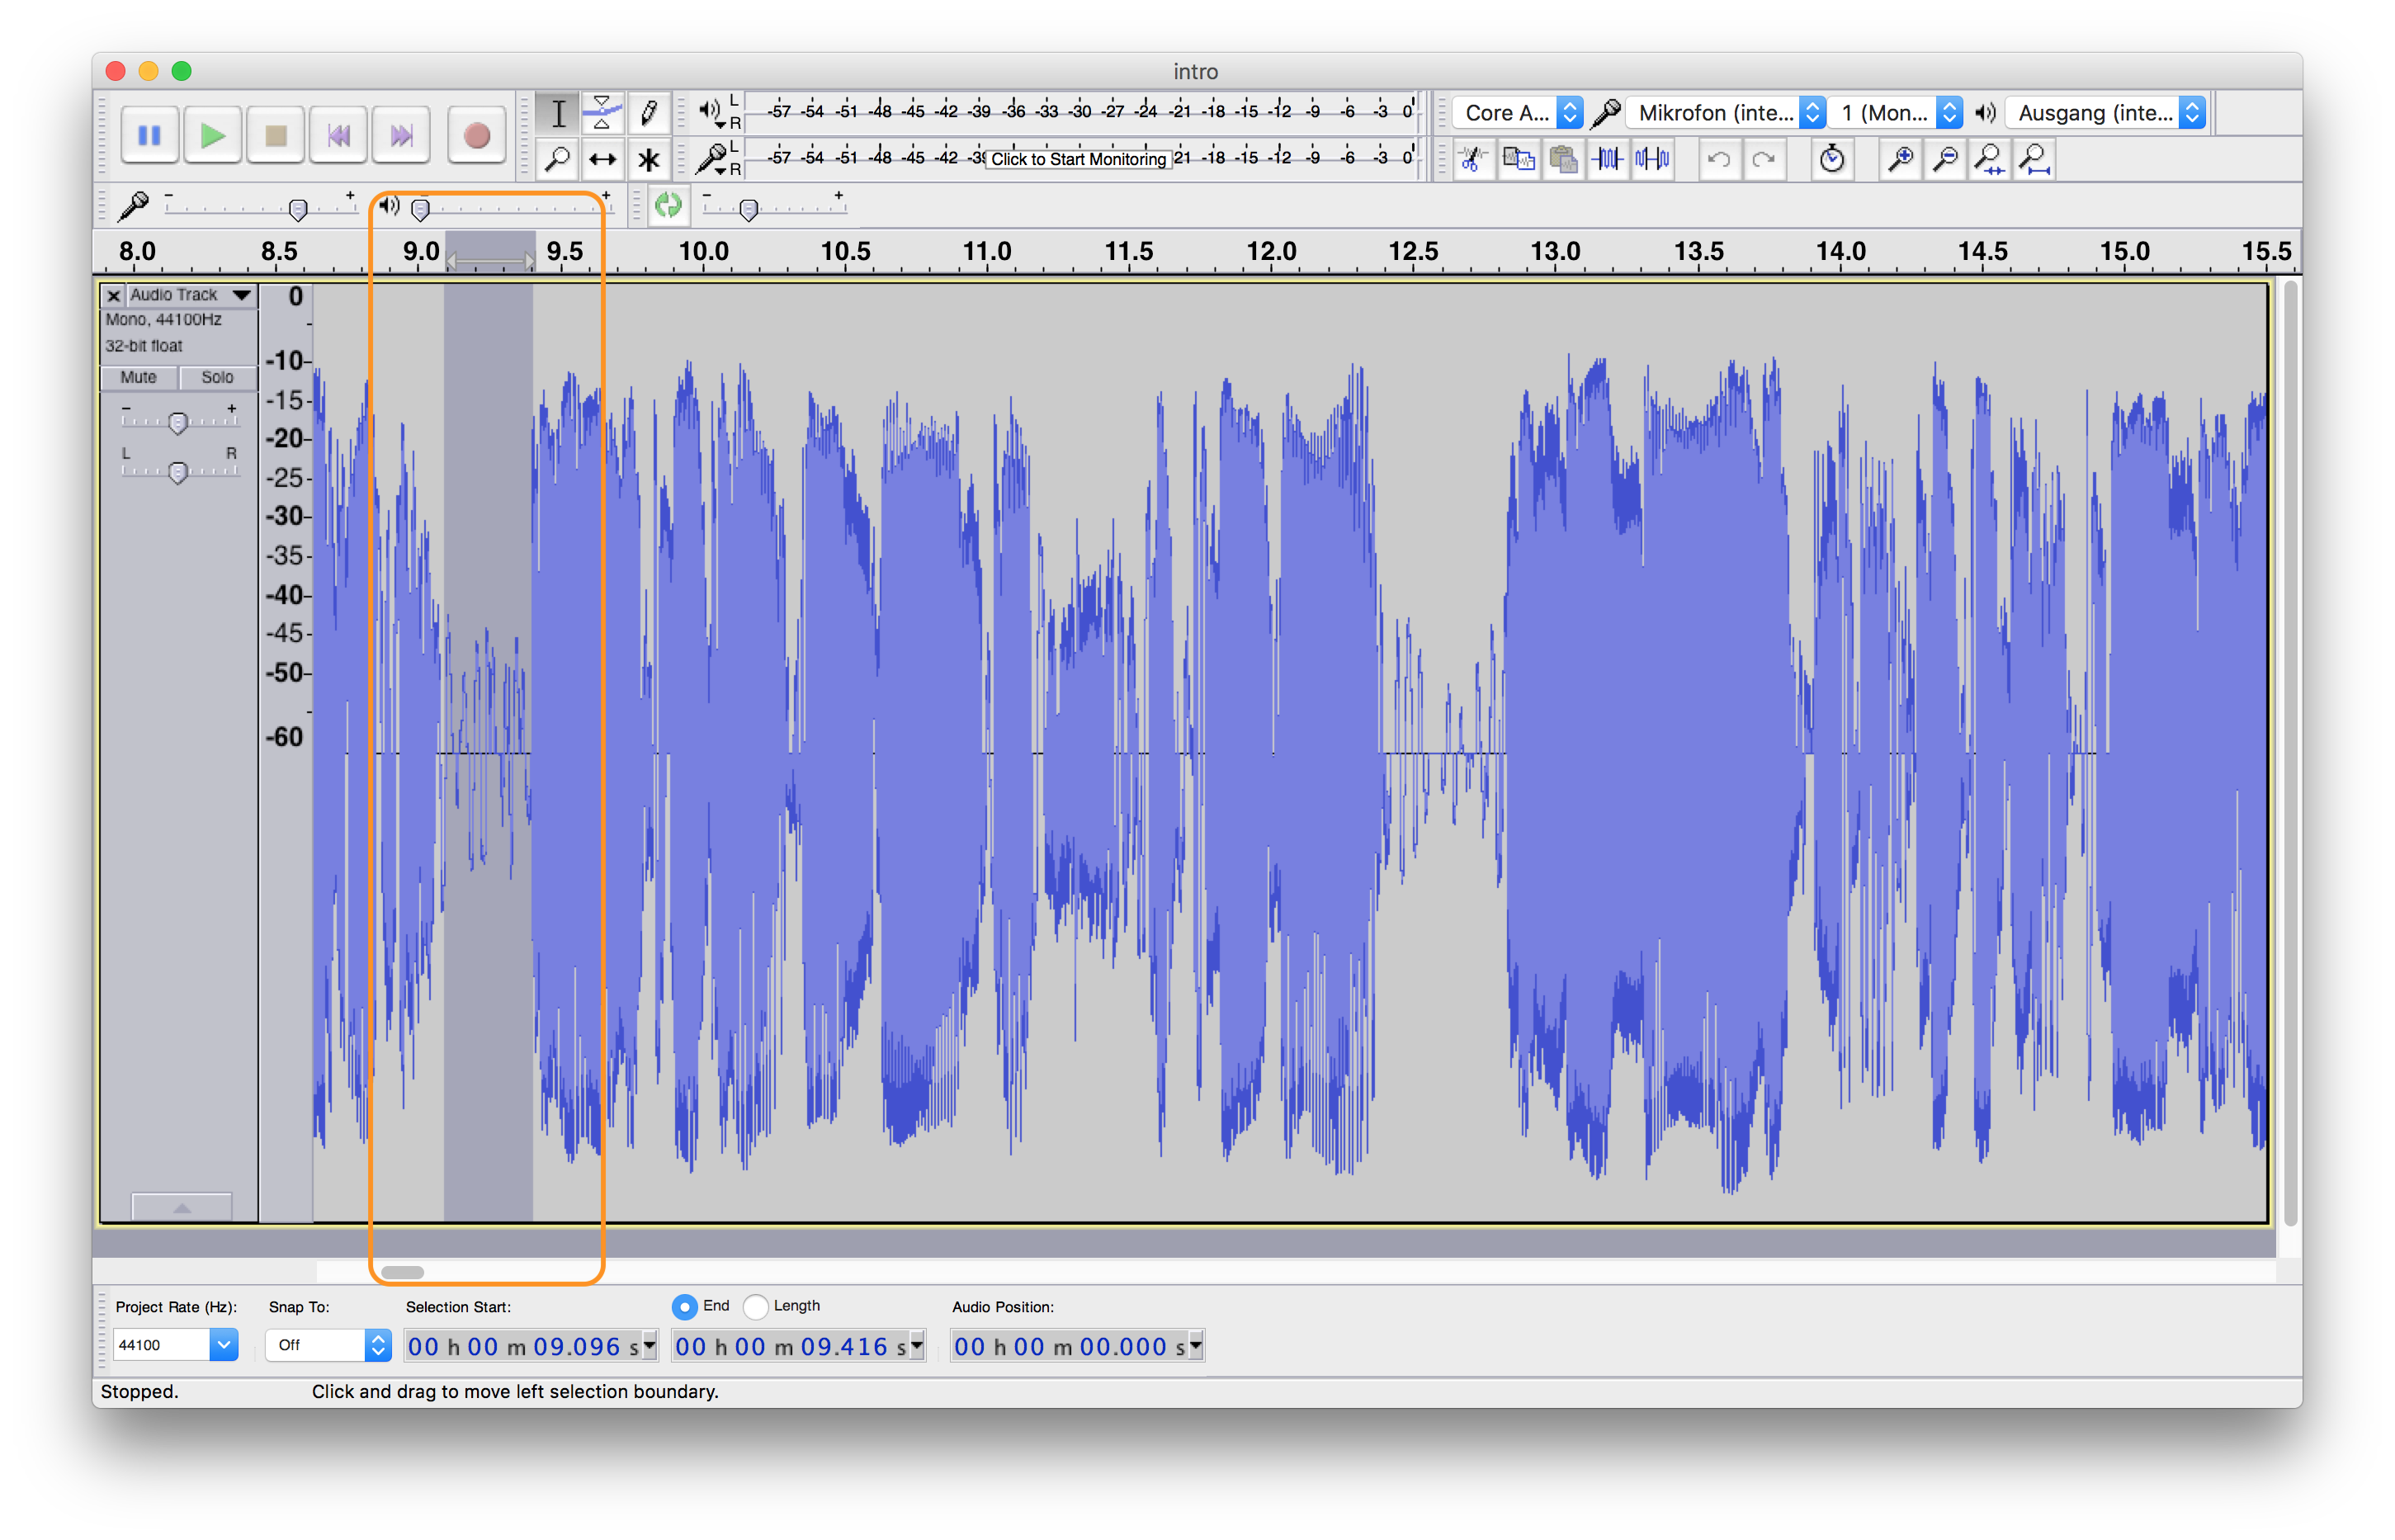 Finding a maximum volume level for applying a noise gate in Audacity DAW